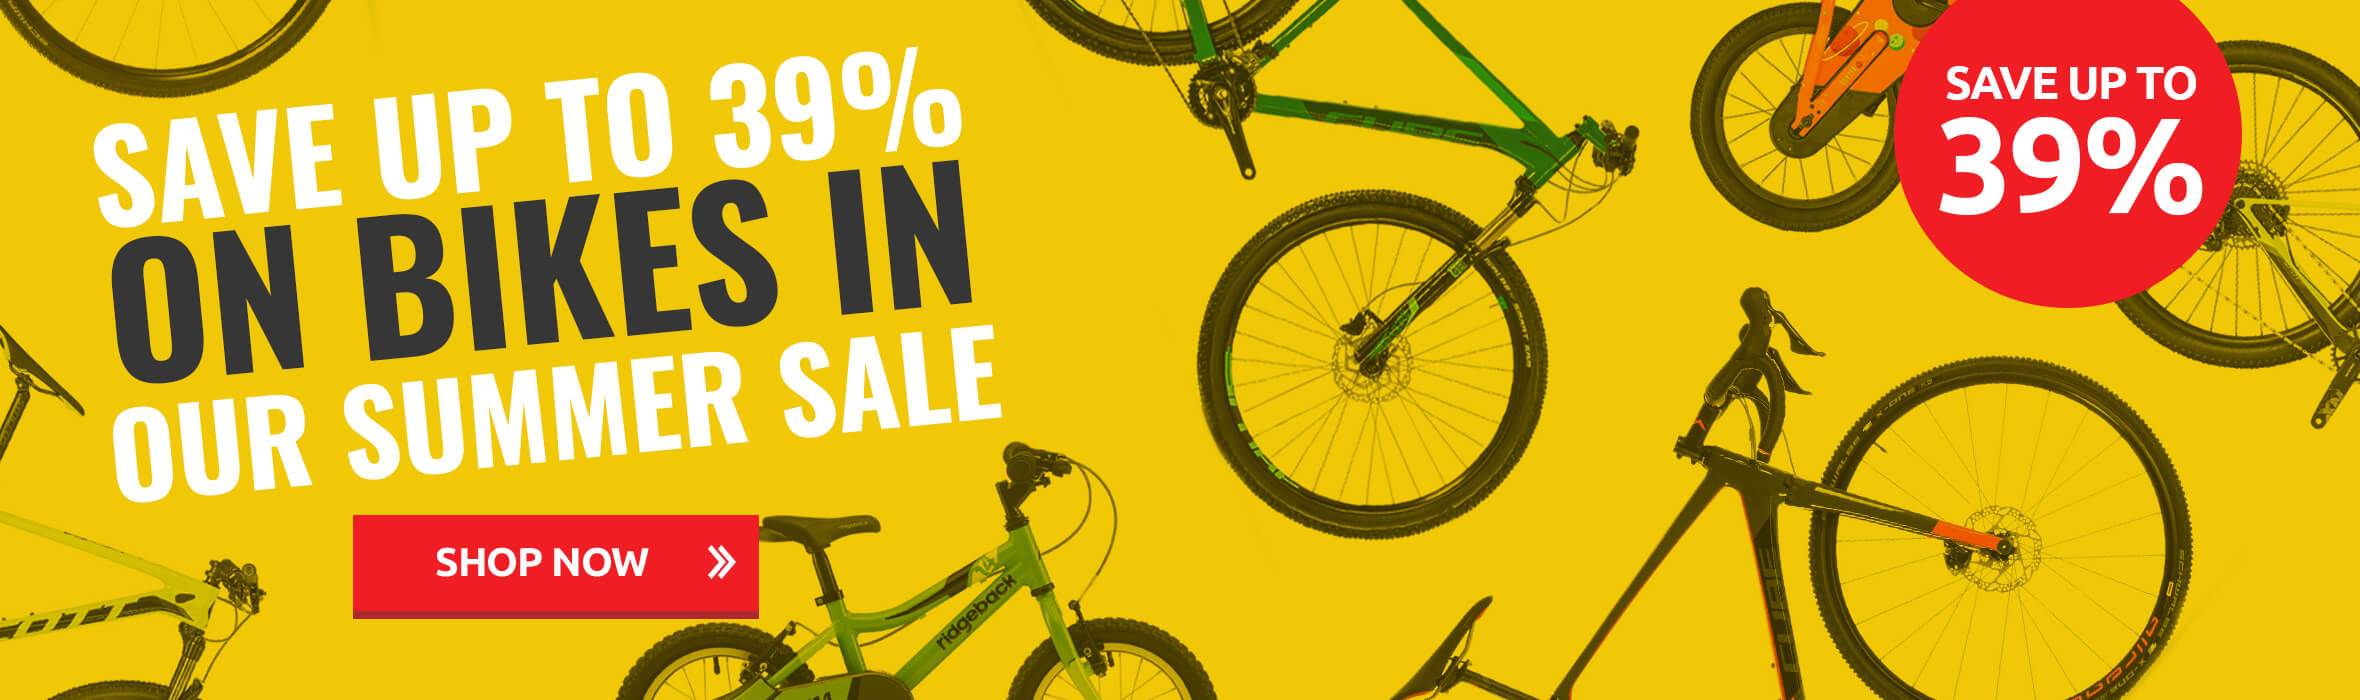 Save up to 39% on Bikes in Our Summer Sale